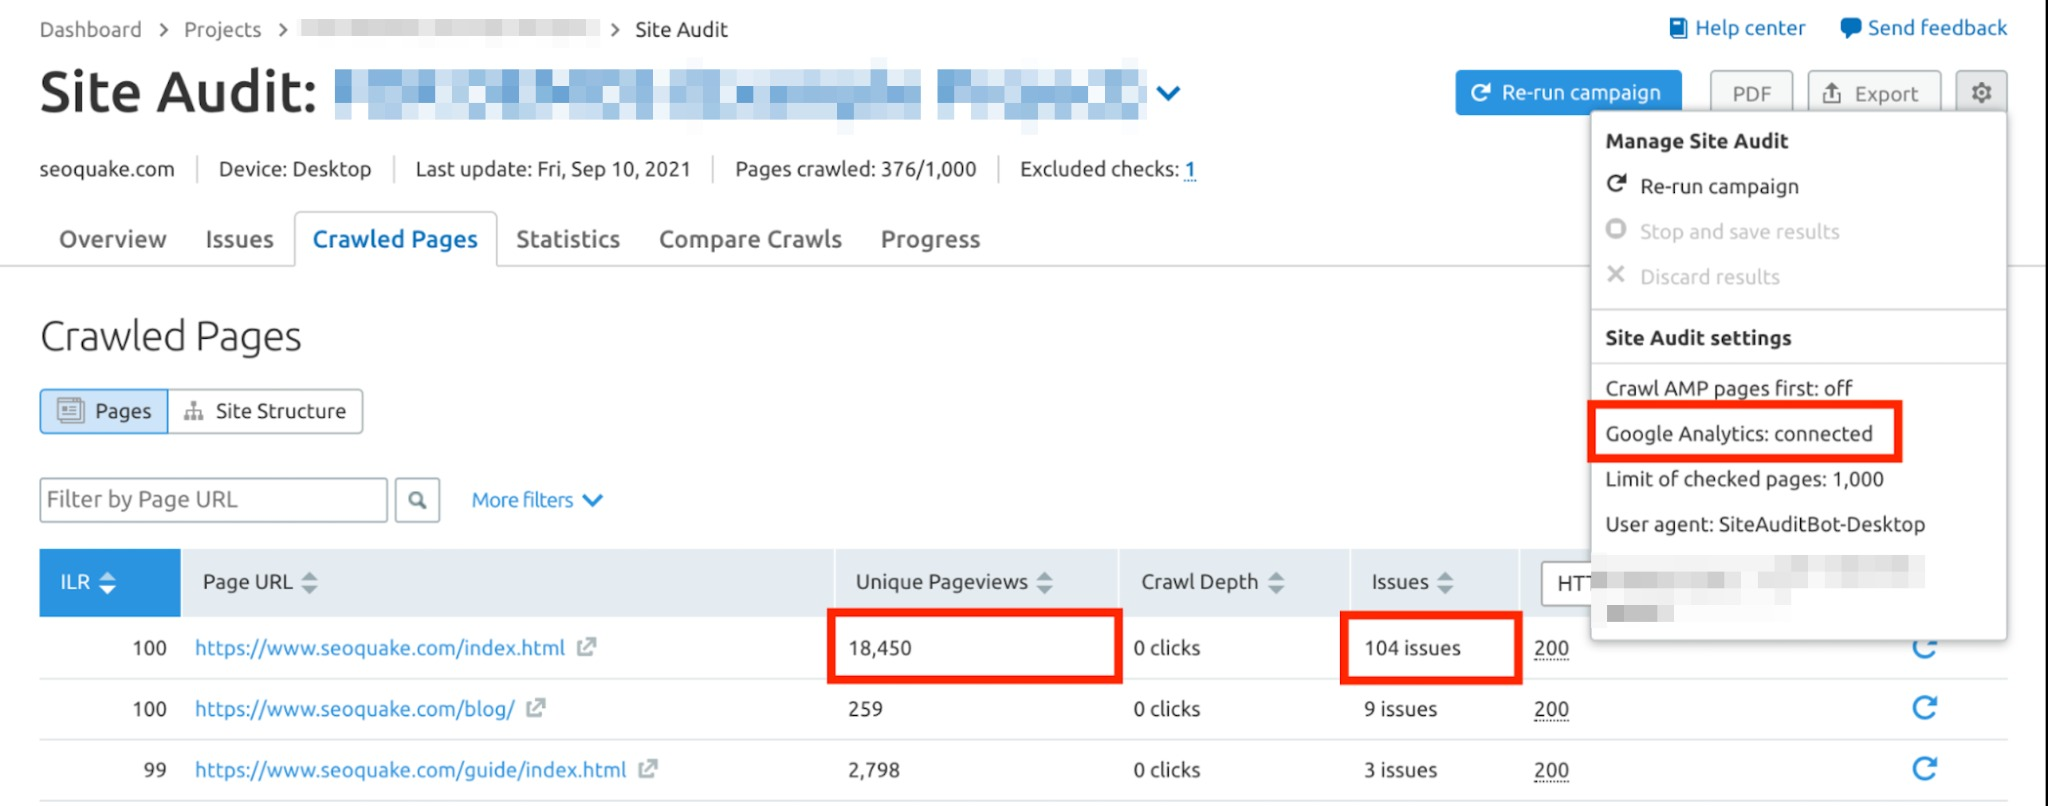 How to Organize Your Work in Site Audit? image 8